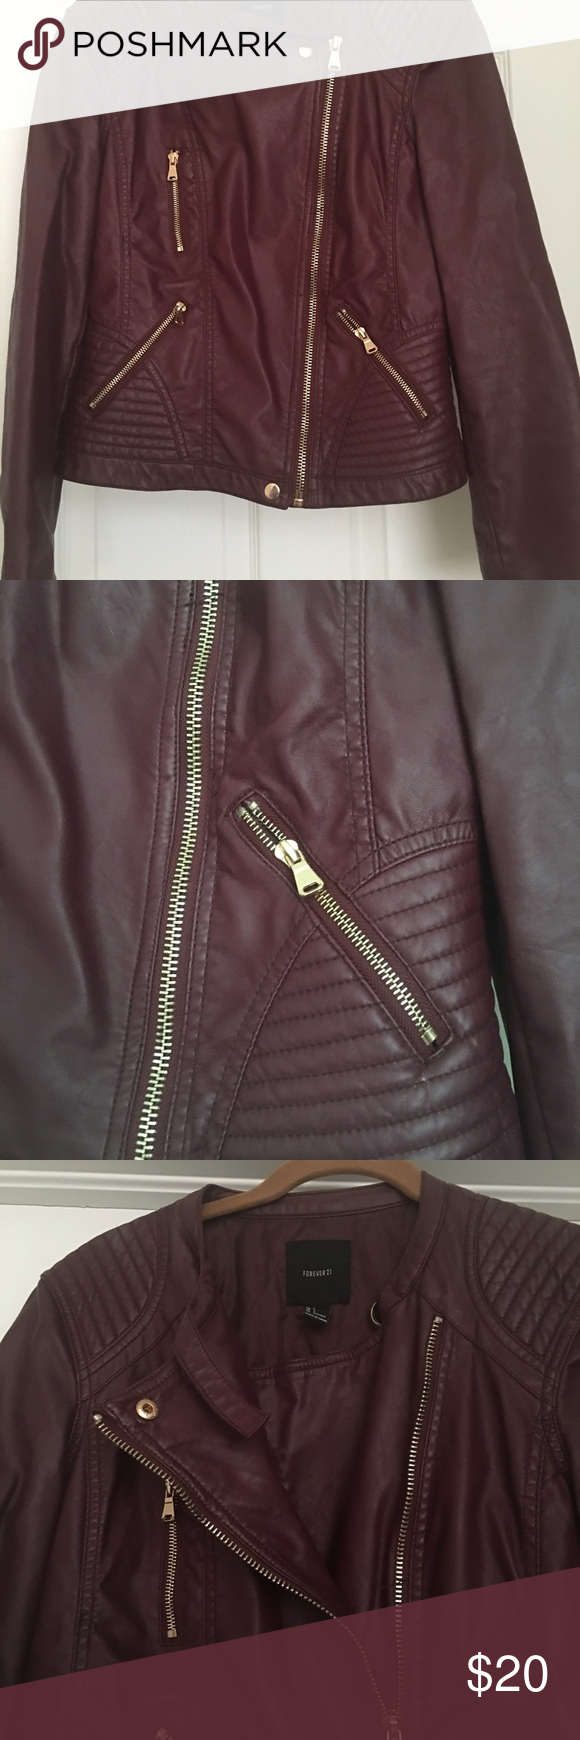 Faux leather jacket Faux leather. Darling multi zip motorcycle jacket. Deep burgundy color / acetate lining. Cute detailing Forever 21 Jackets & Coats